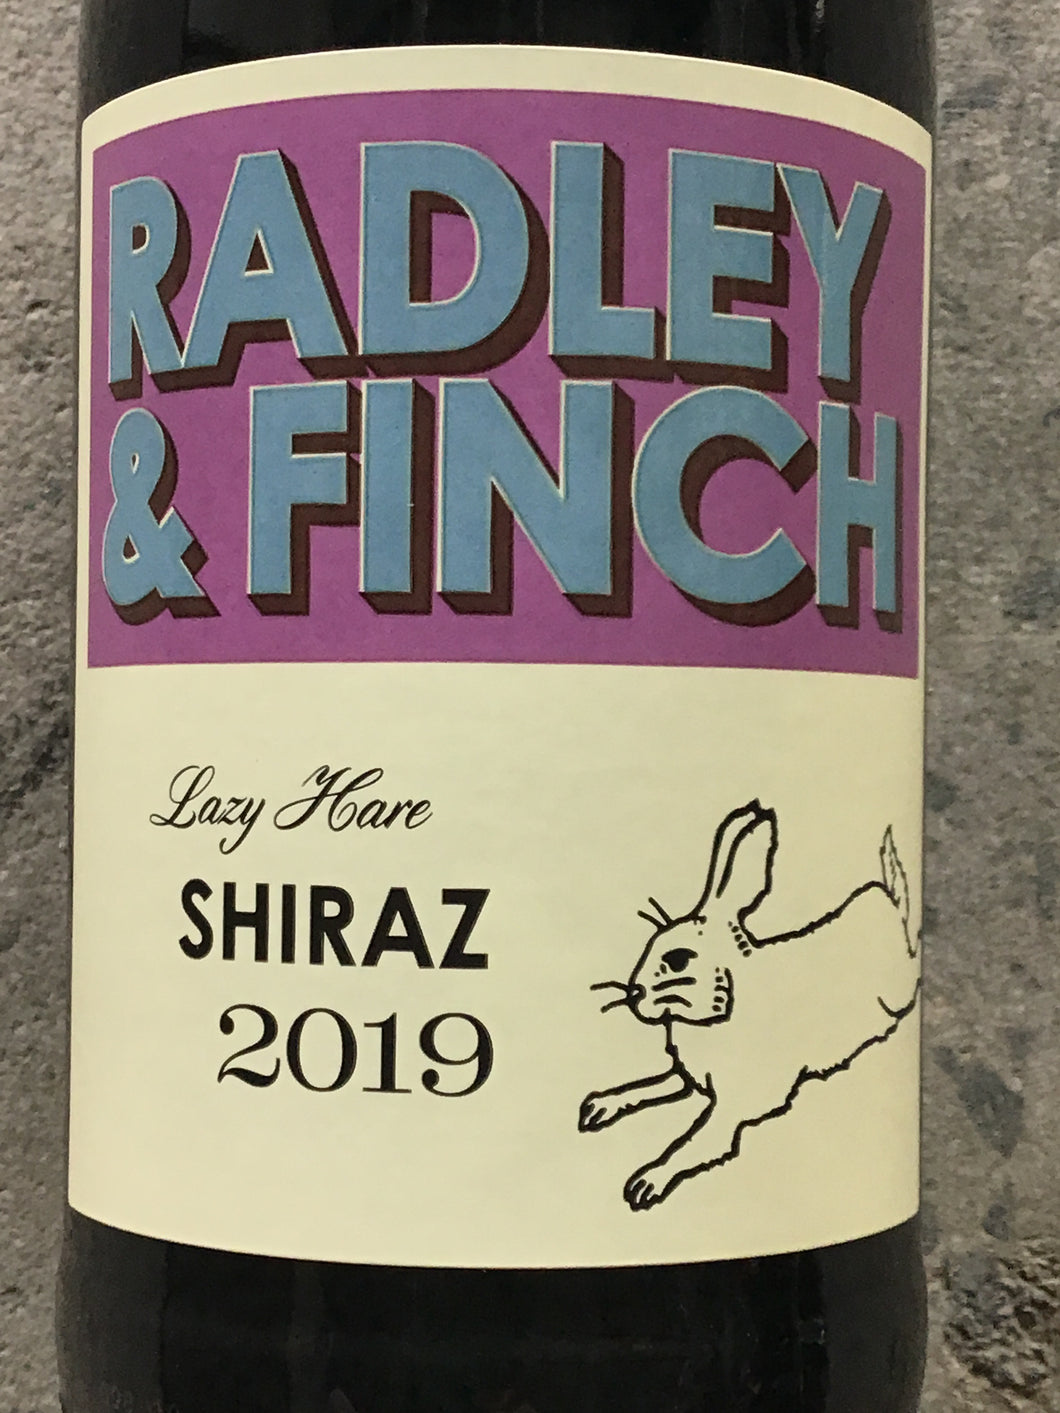 Radley & Finch - Shiraz